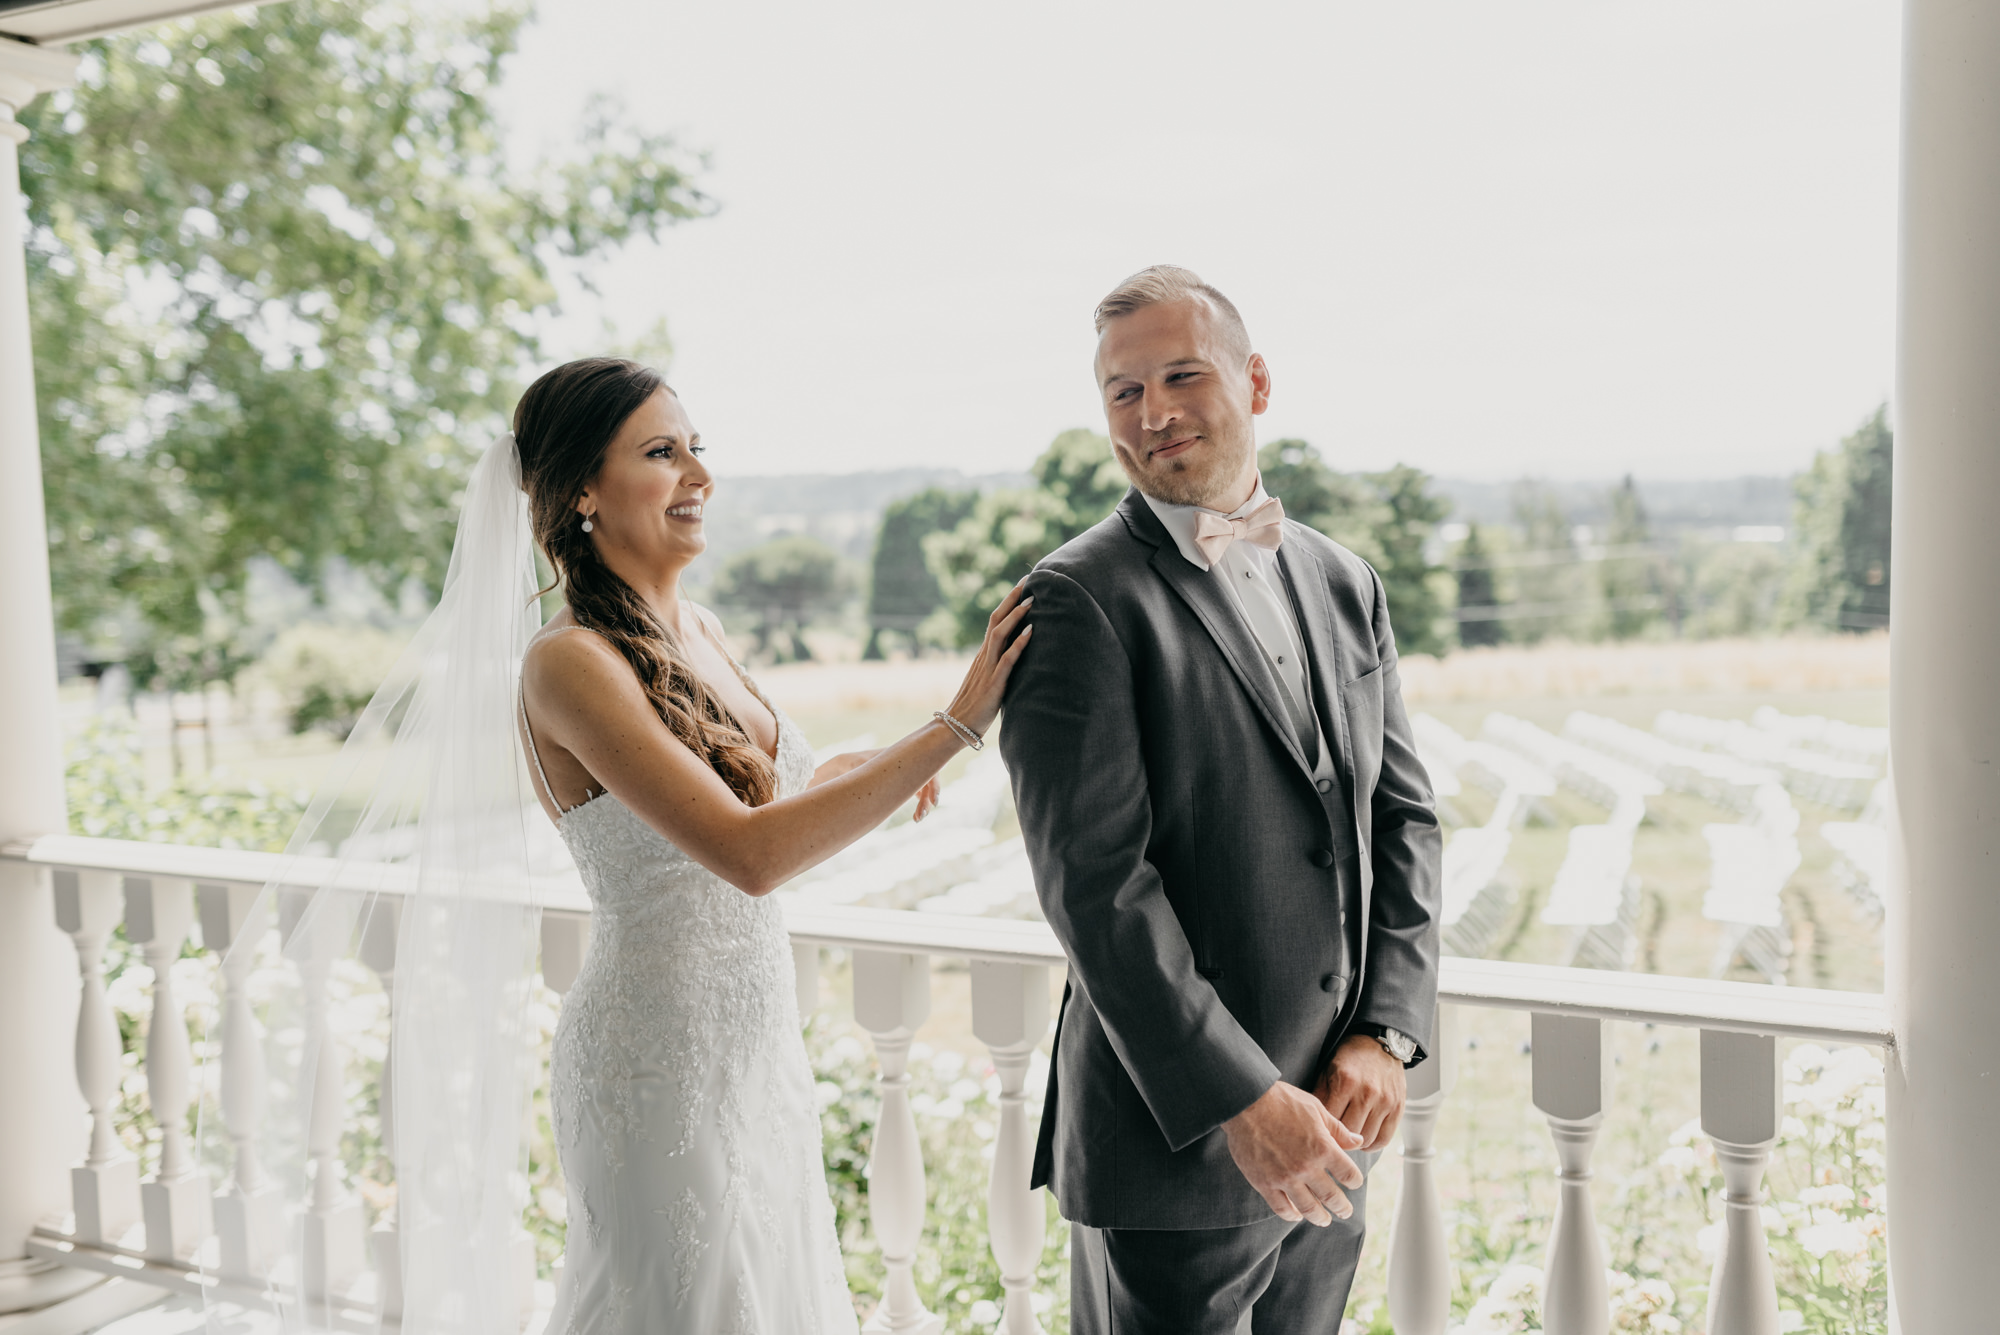 53-first-look-barn-kestrel-wedding-lake-oswego-wedding.jpg